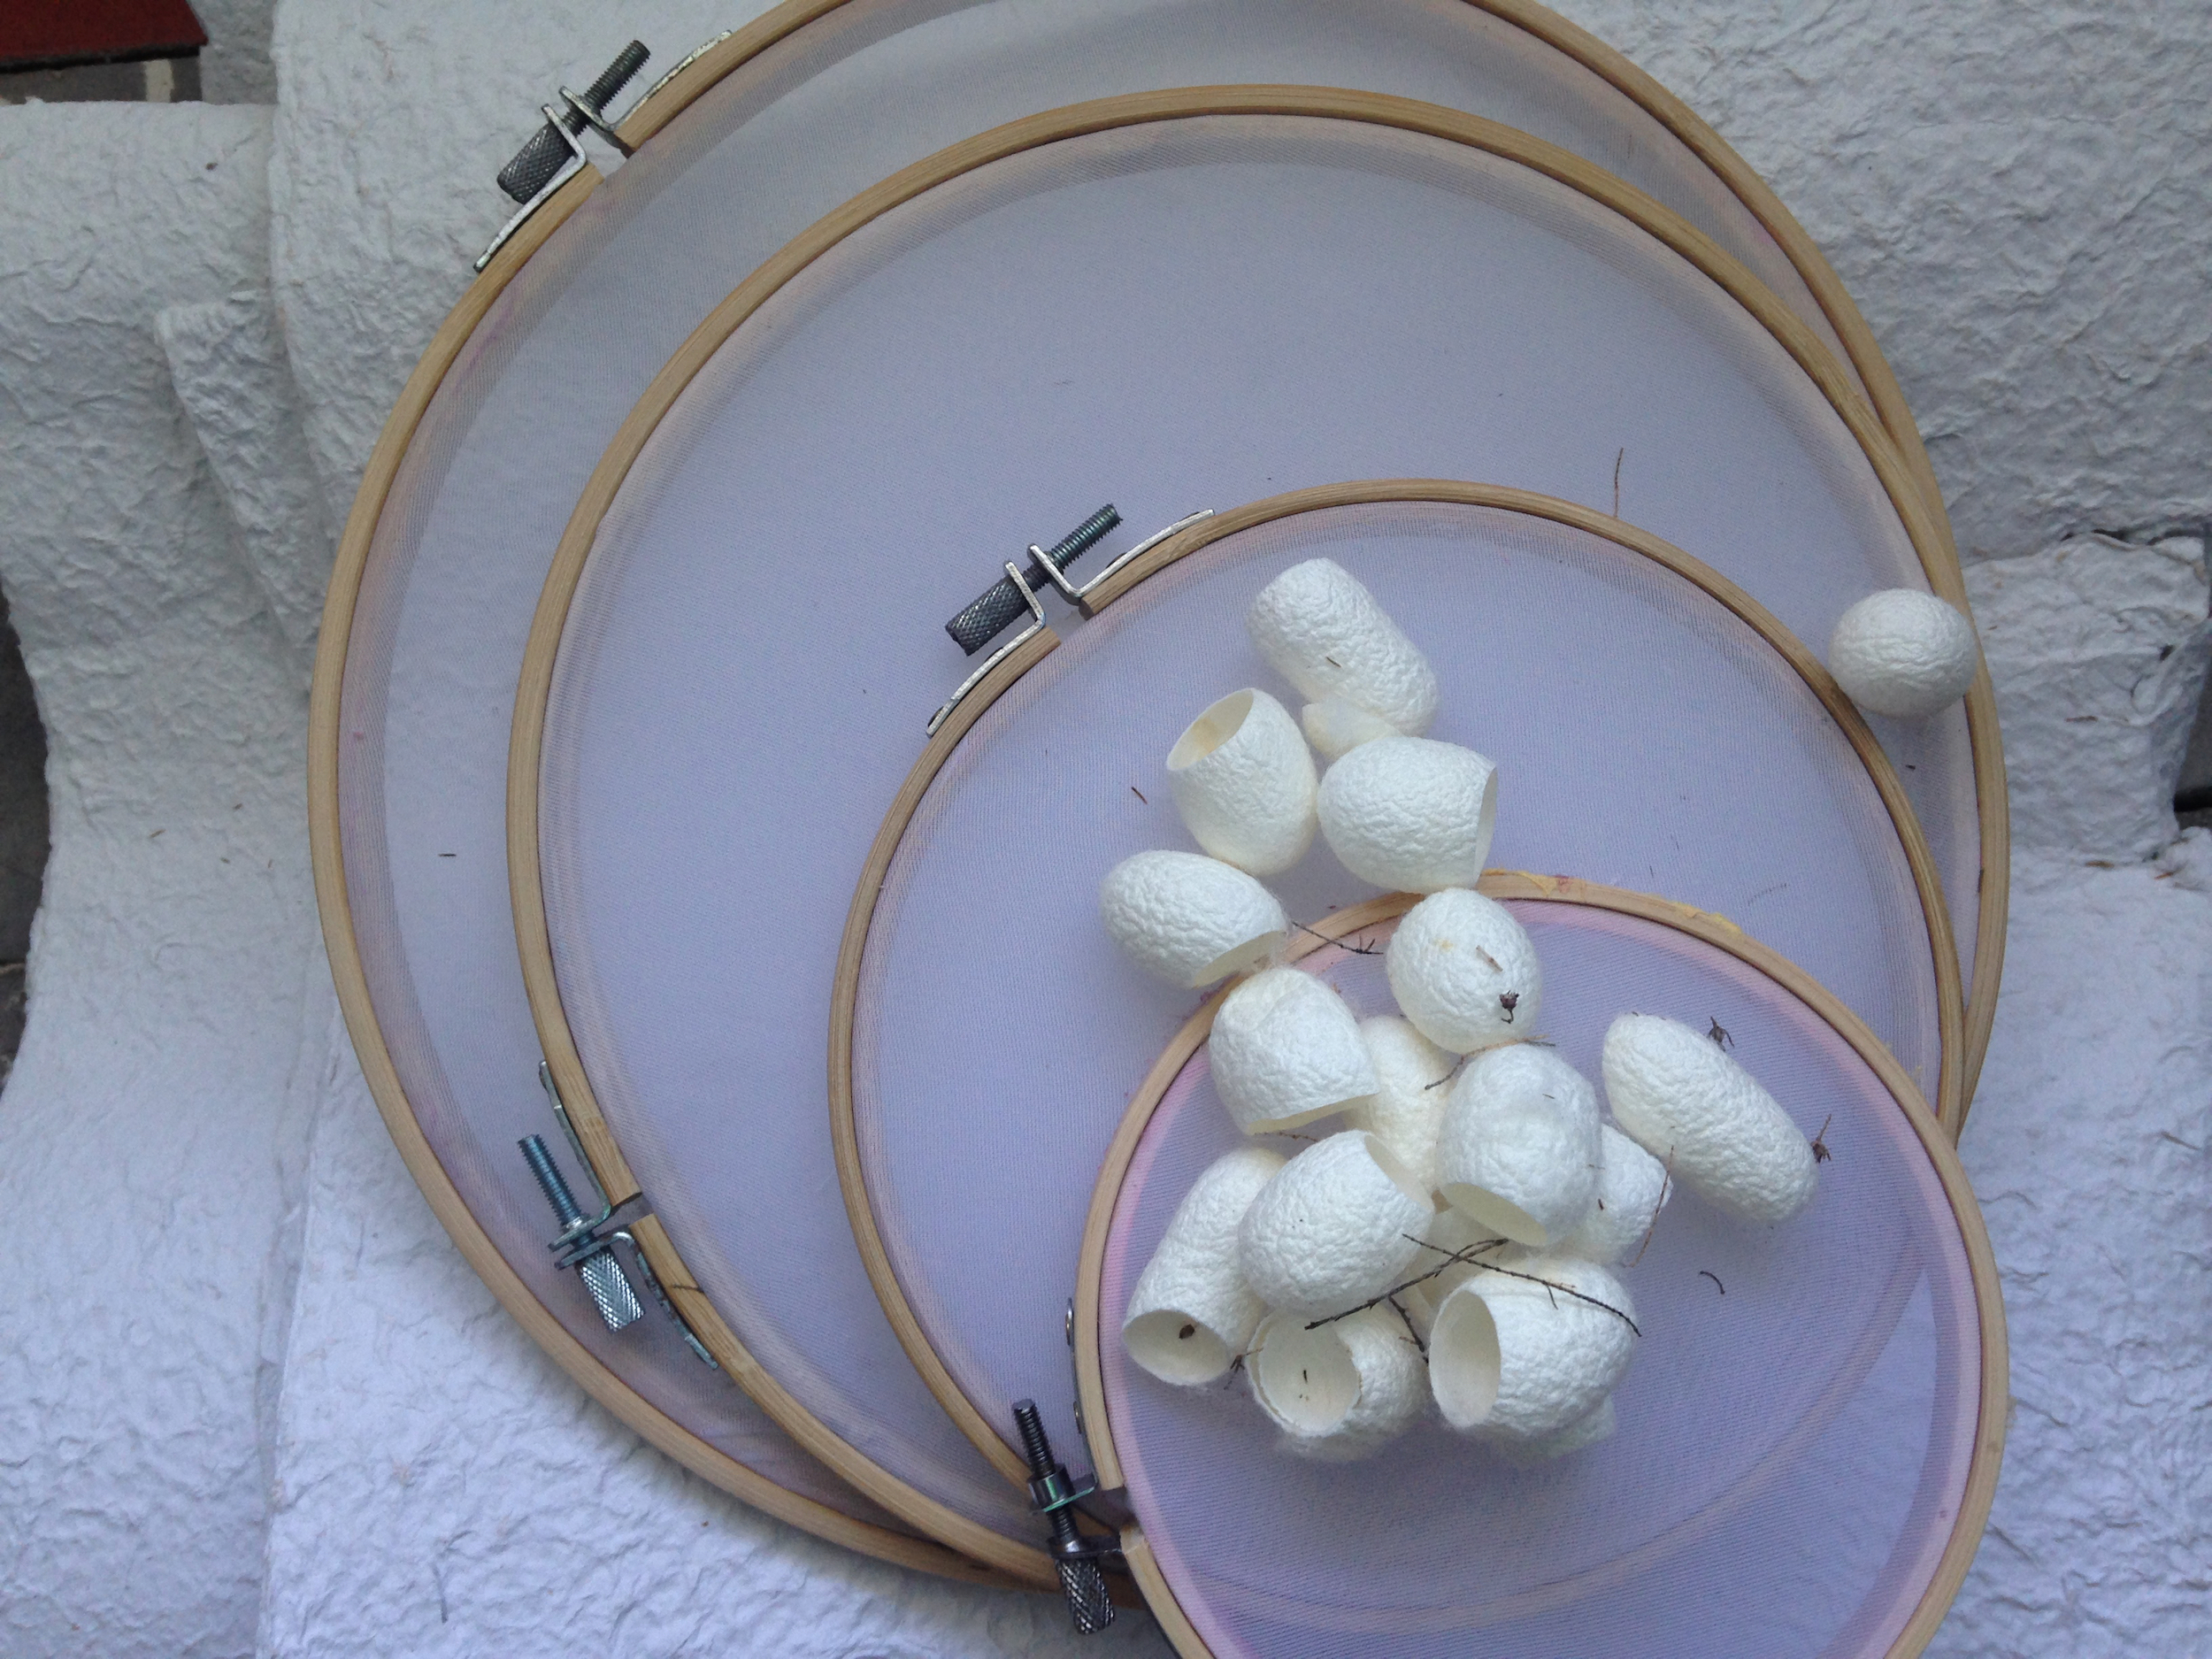 My new papermaking circular embroidery frames, some paper linters and silk cocoons.